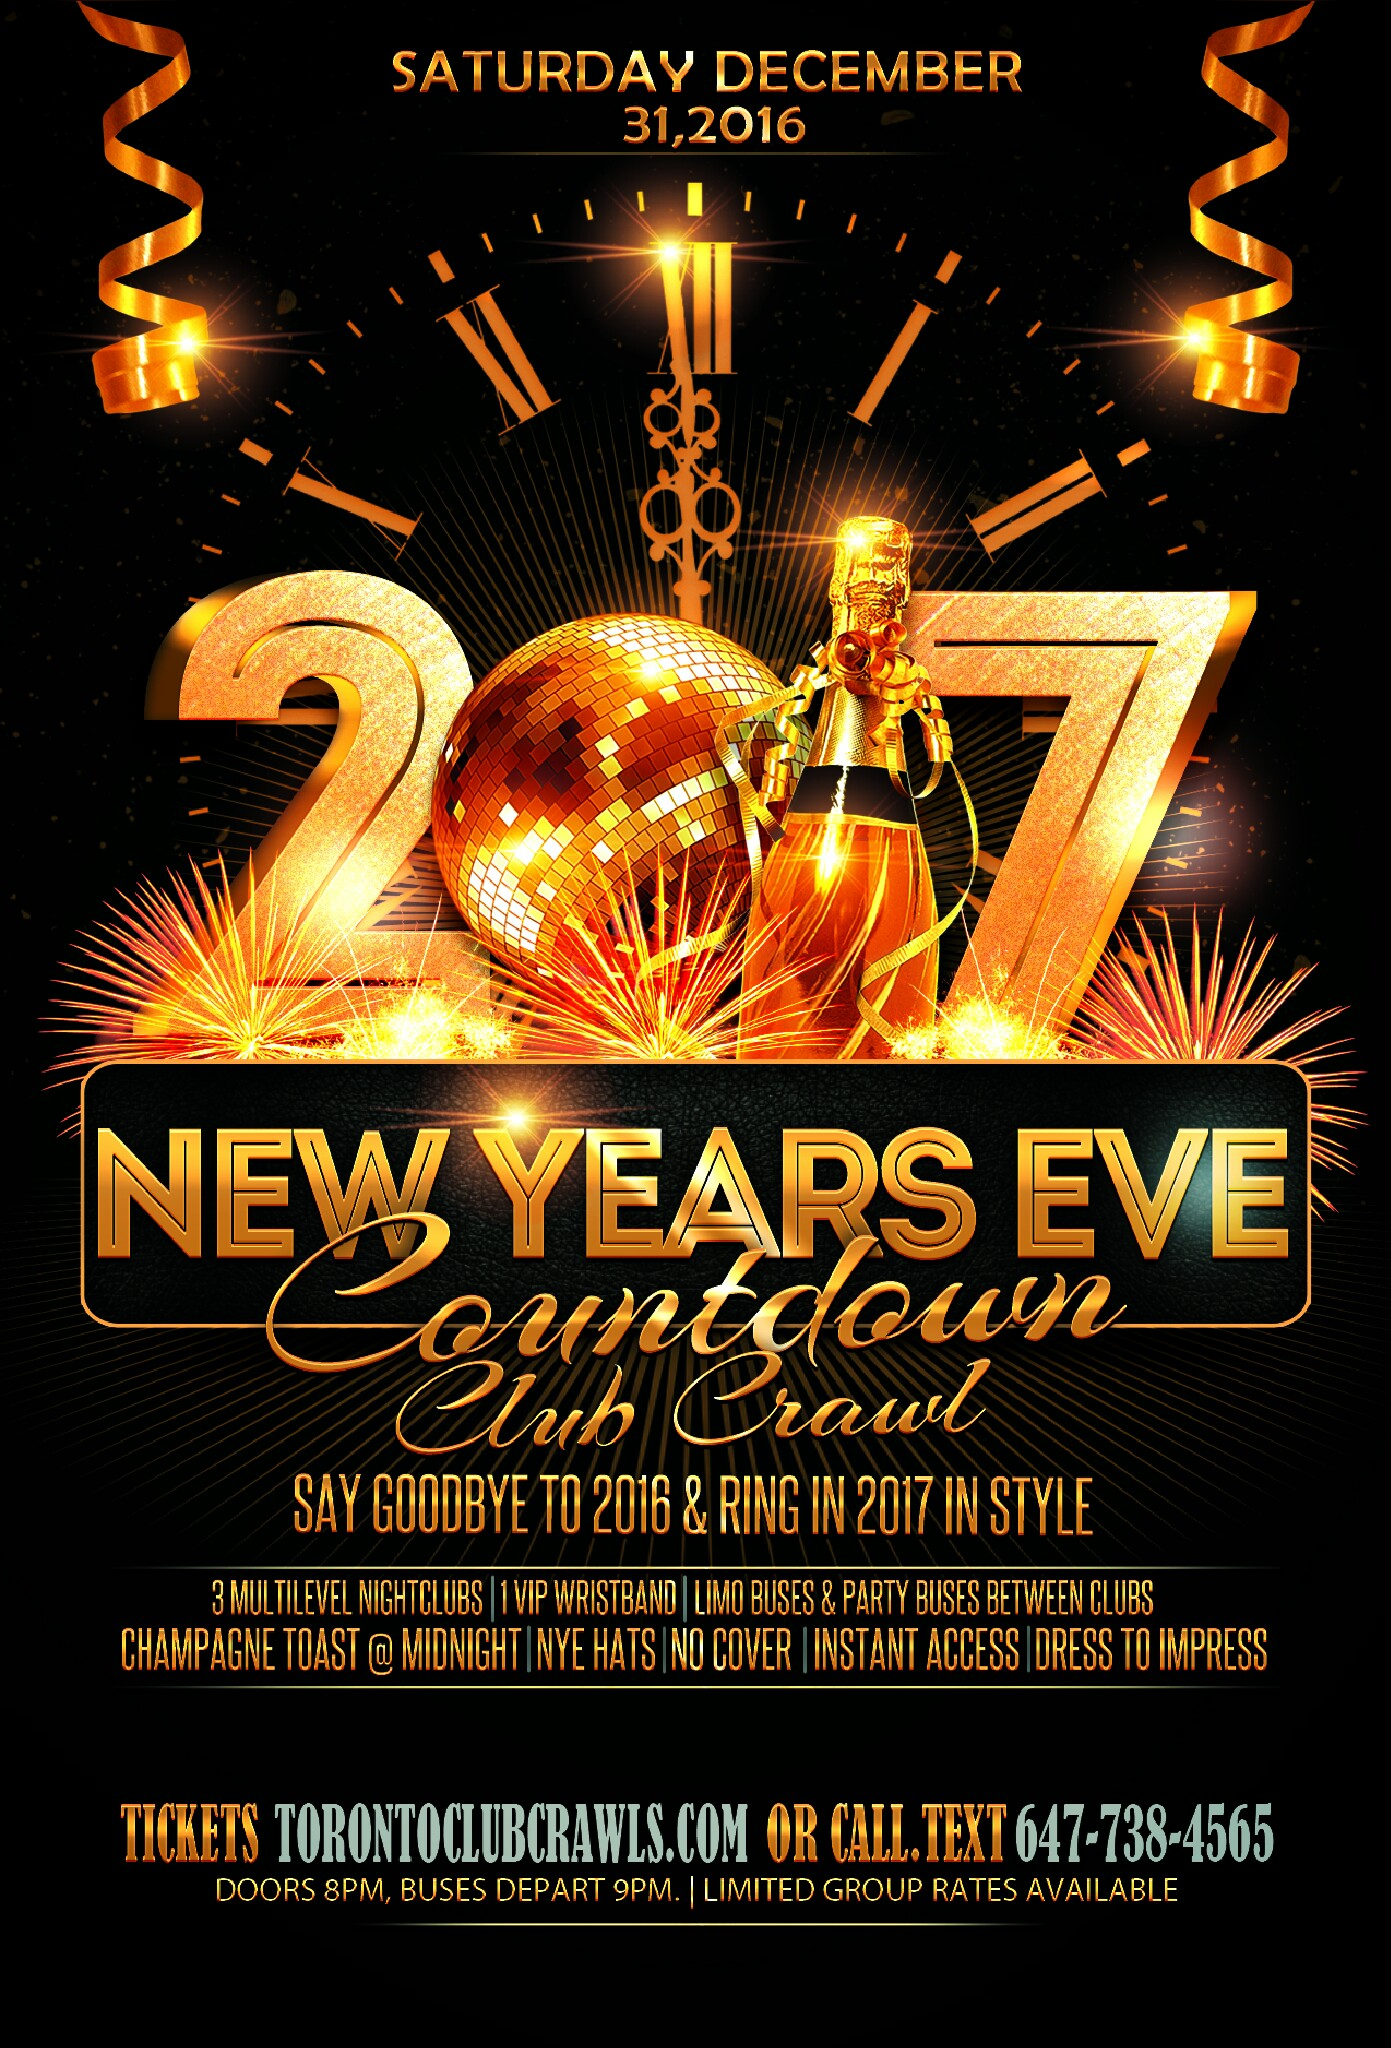 Toronto New Years Eve Club Crawl Countdown